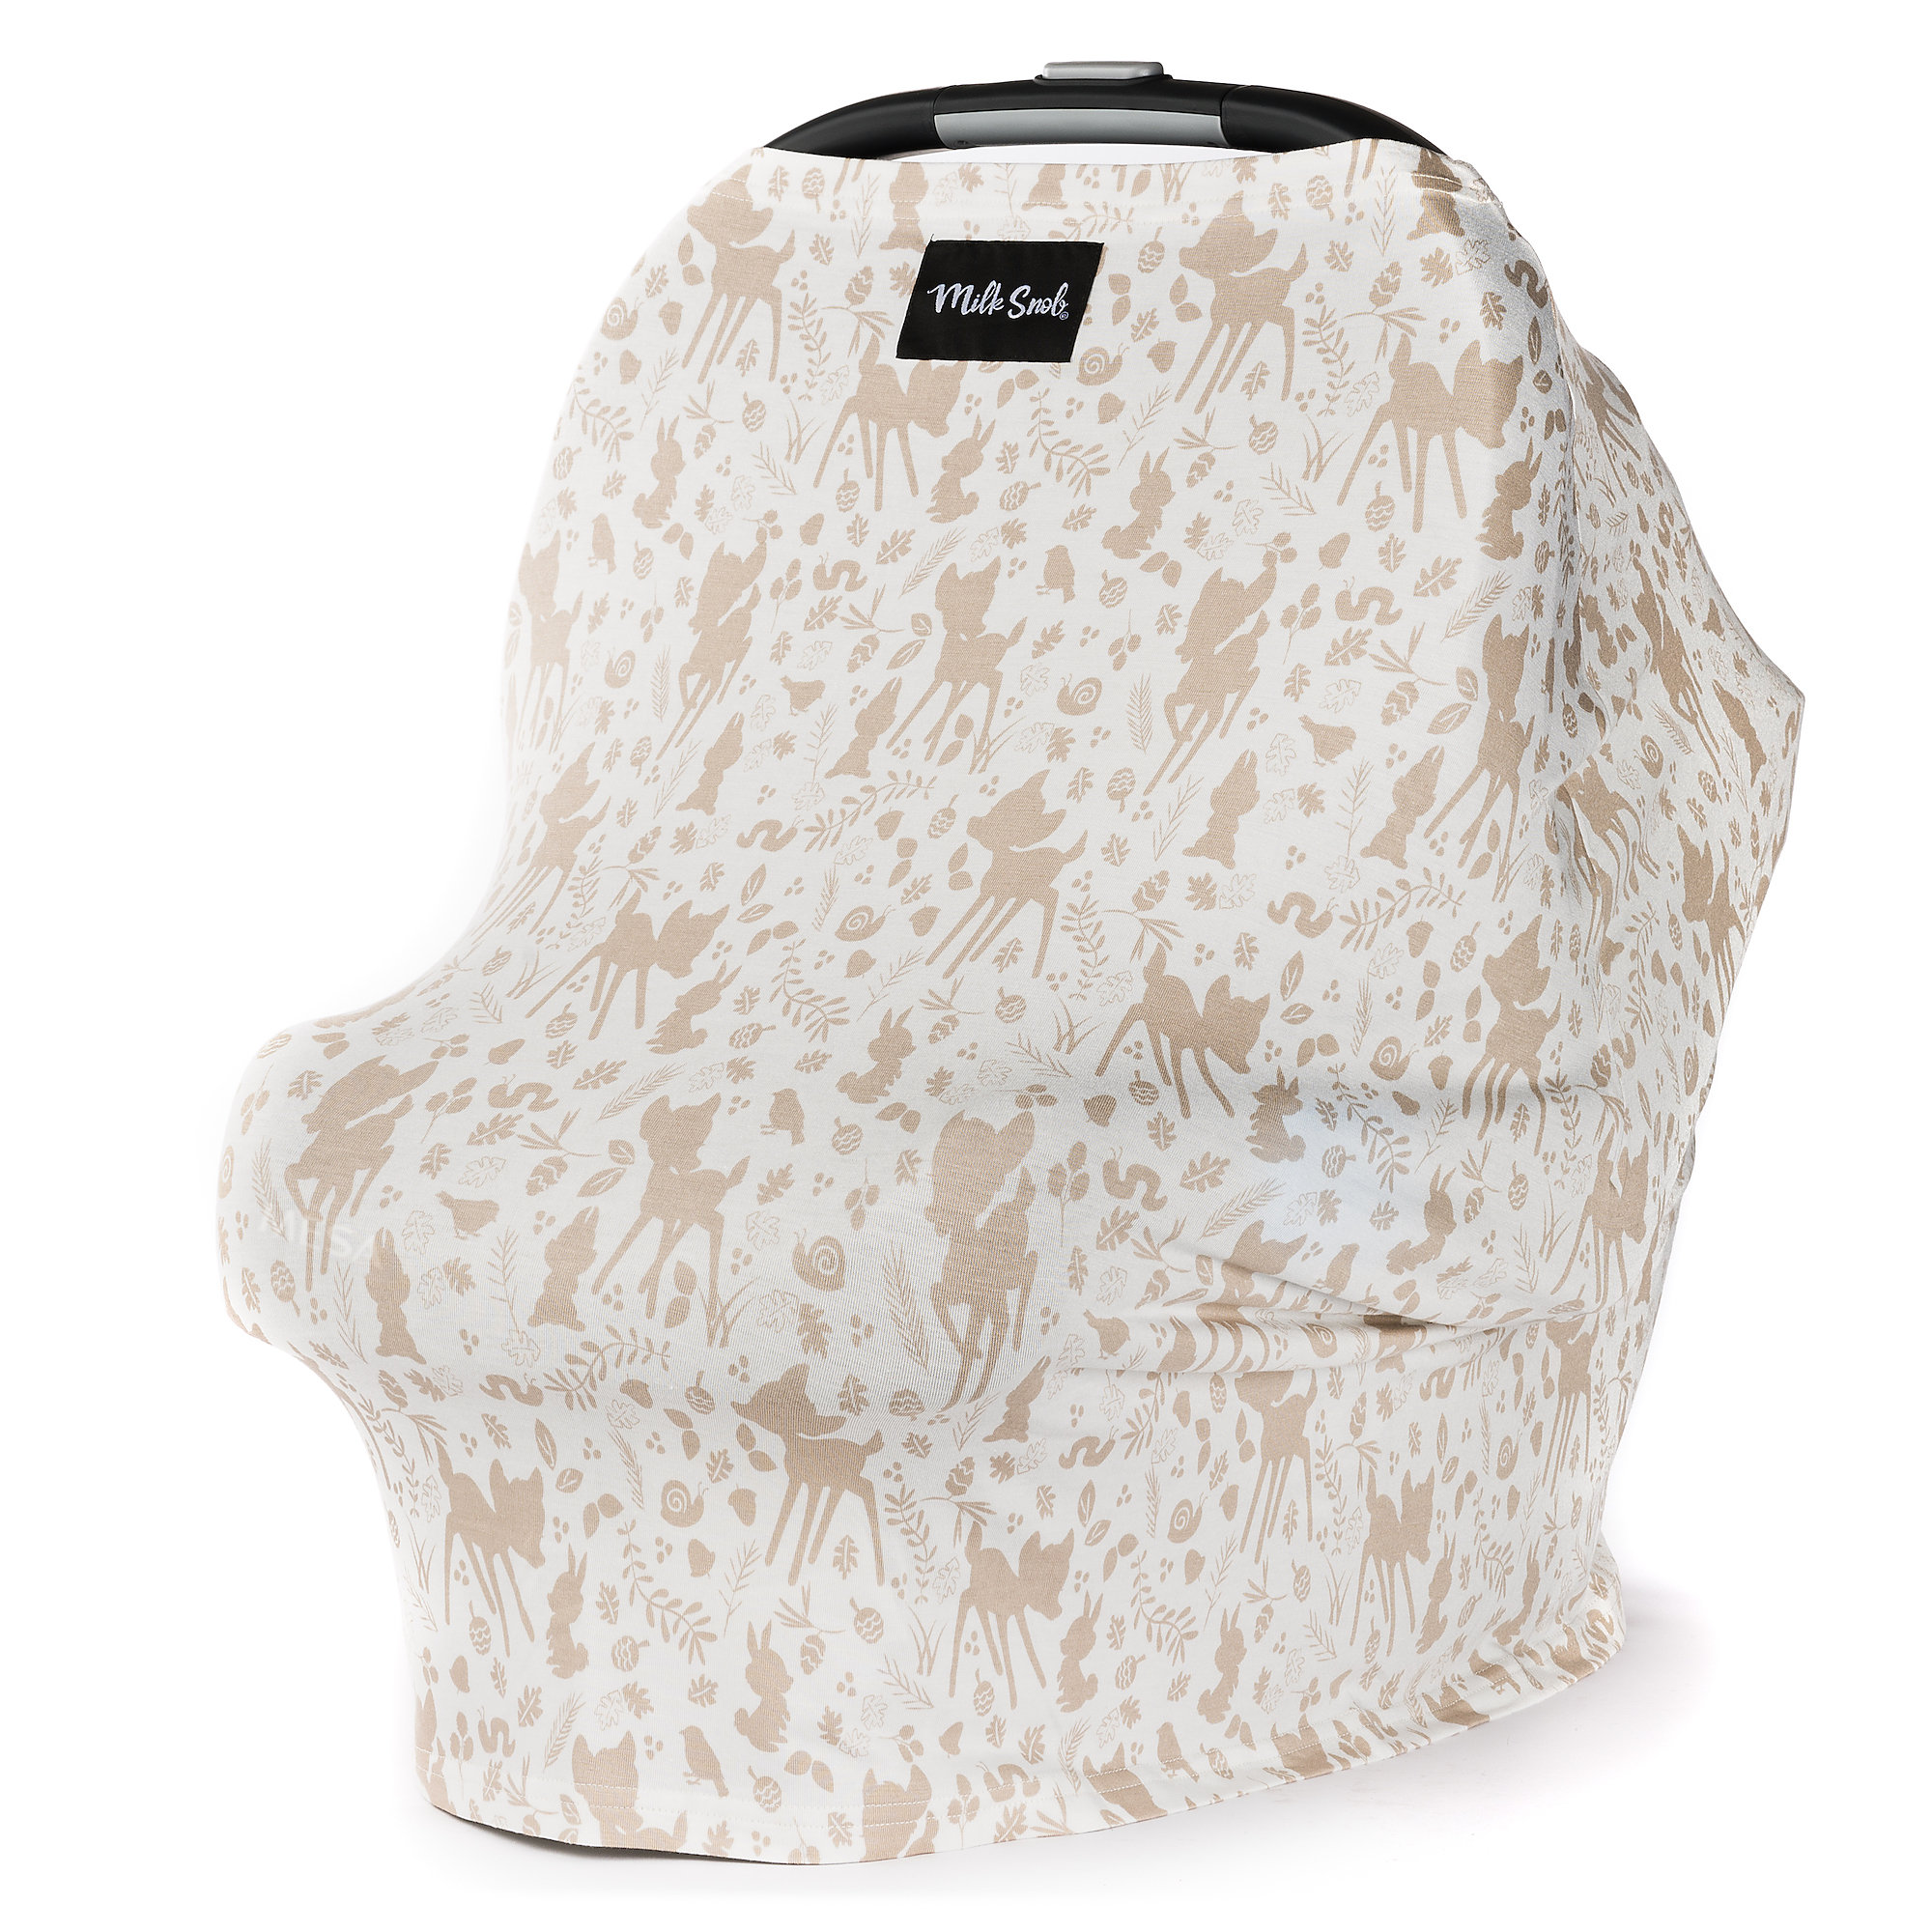 Bambi Baby Seat Cover by Milk Snob